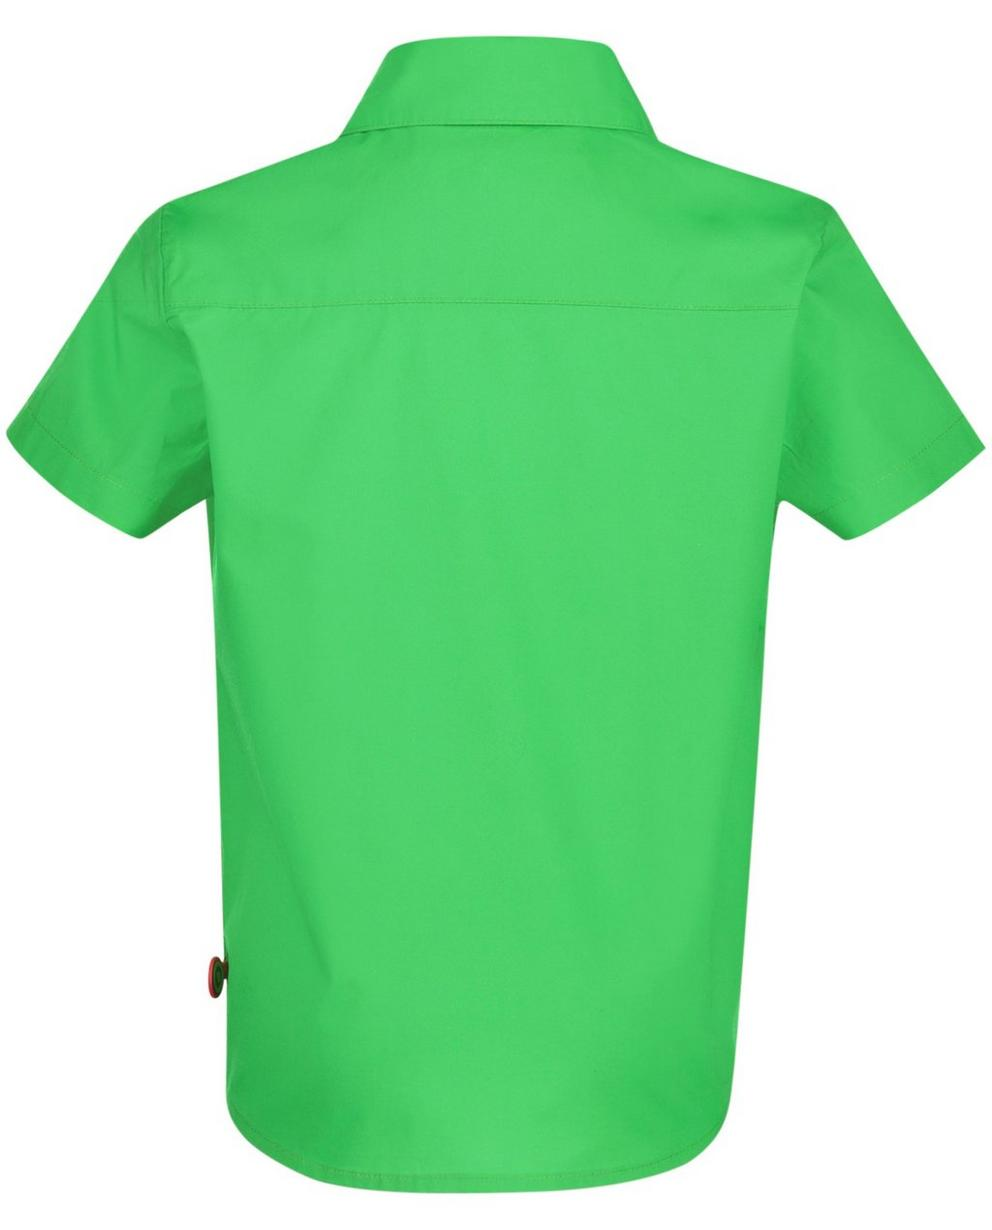 Chemises - bright green - Grasgroen hemd